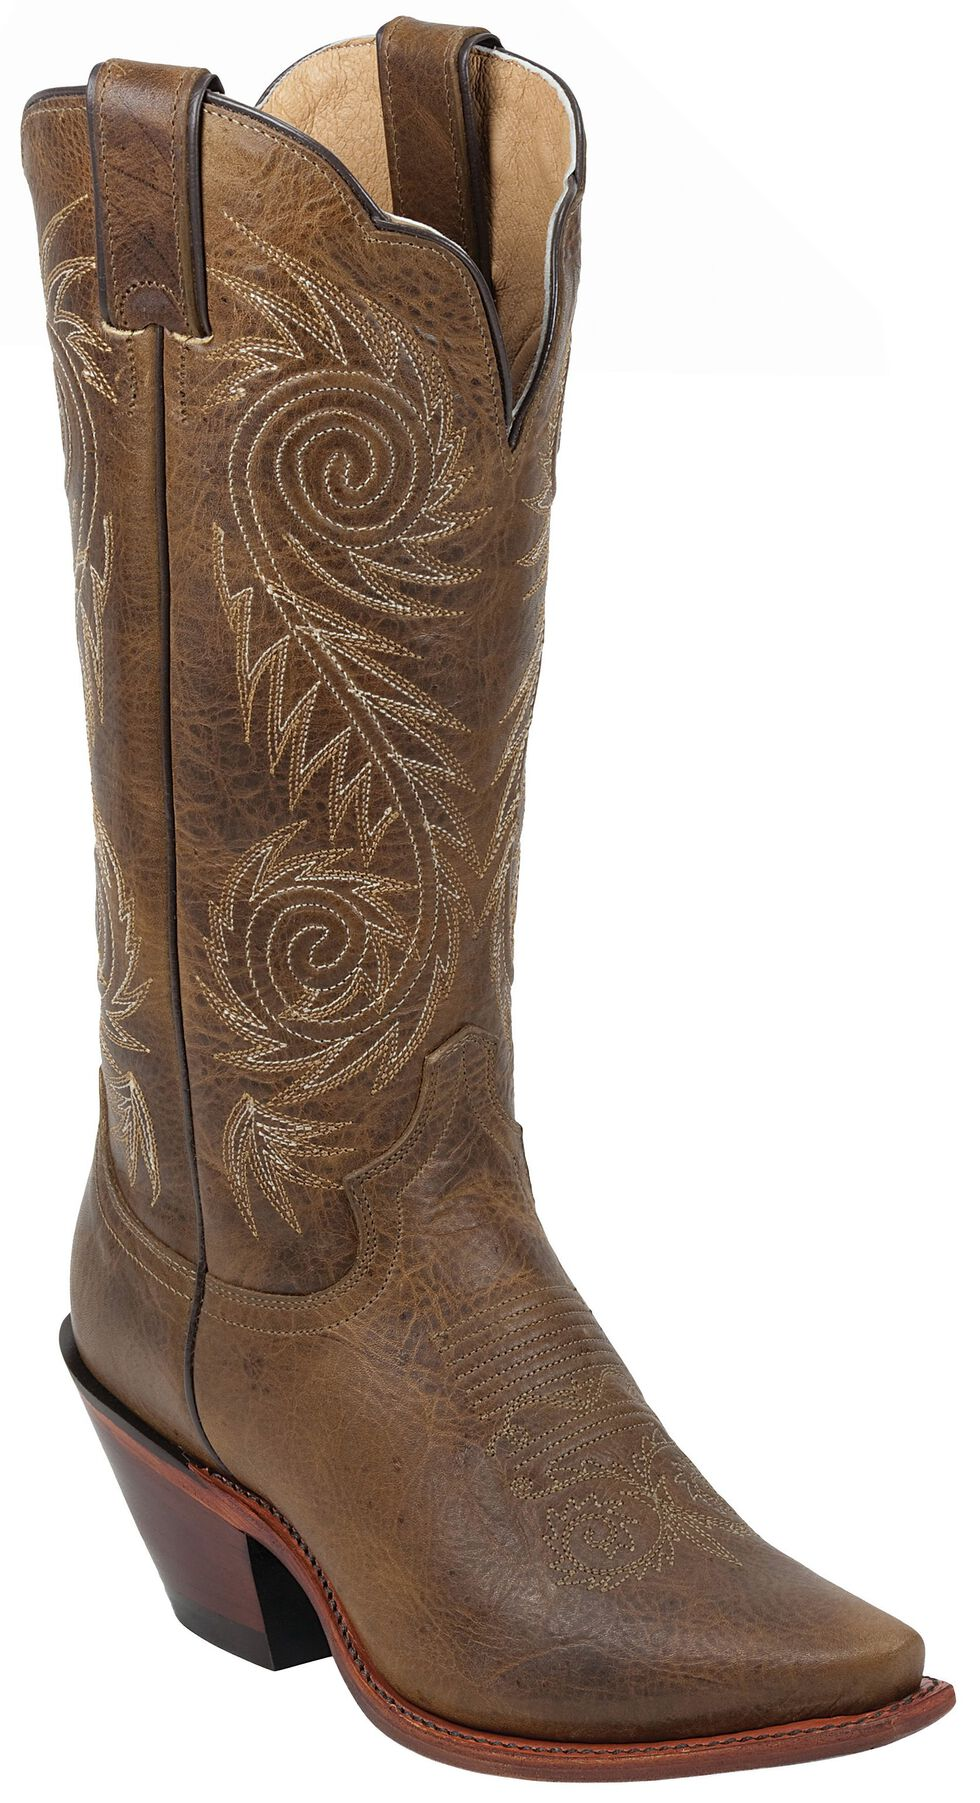 Justin Women's Tan Damiana Cowgirl Boots - Pointed Toe, Tan, hi-res